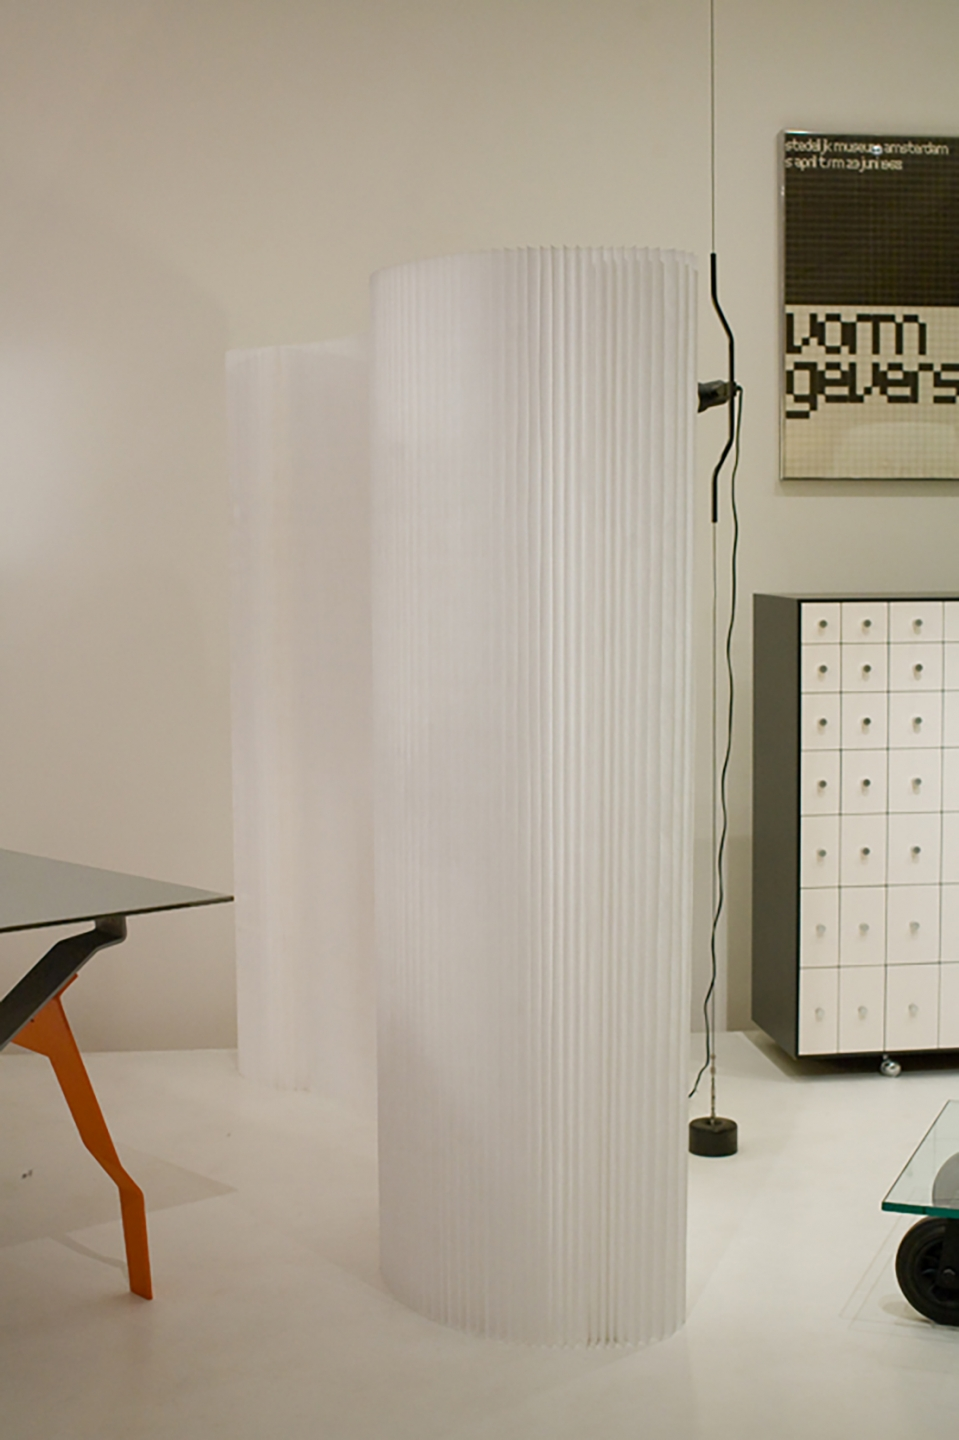 molo white textile softwall for Rough Cut: Design Takes a Sharp Edge at MoMA in New York